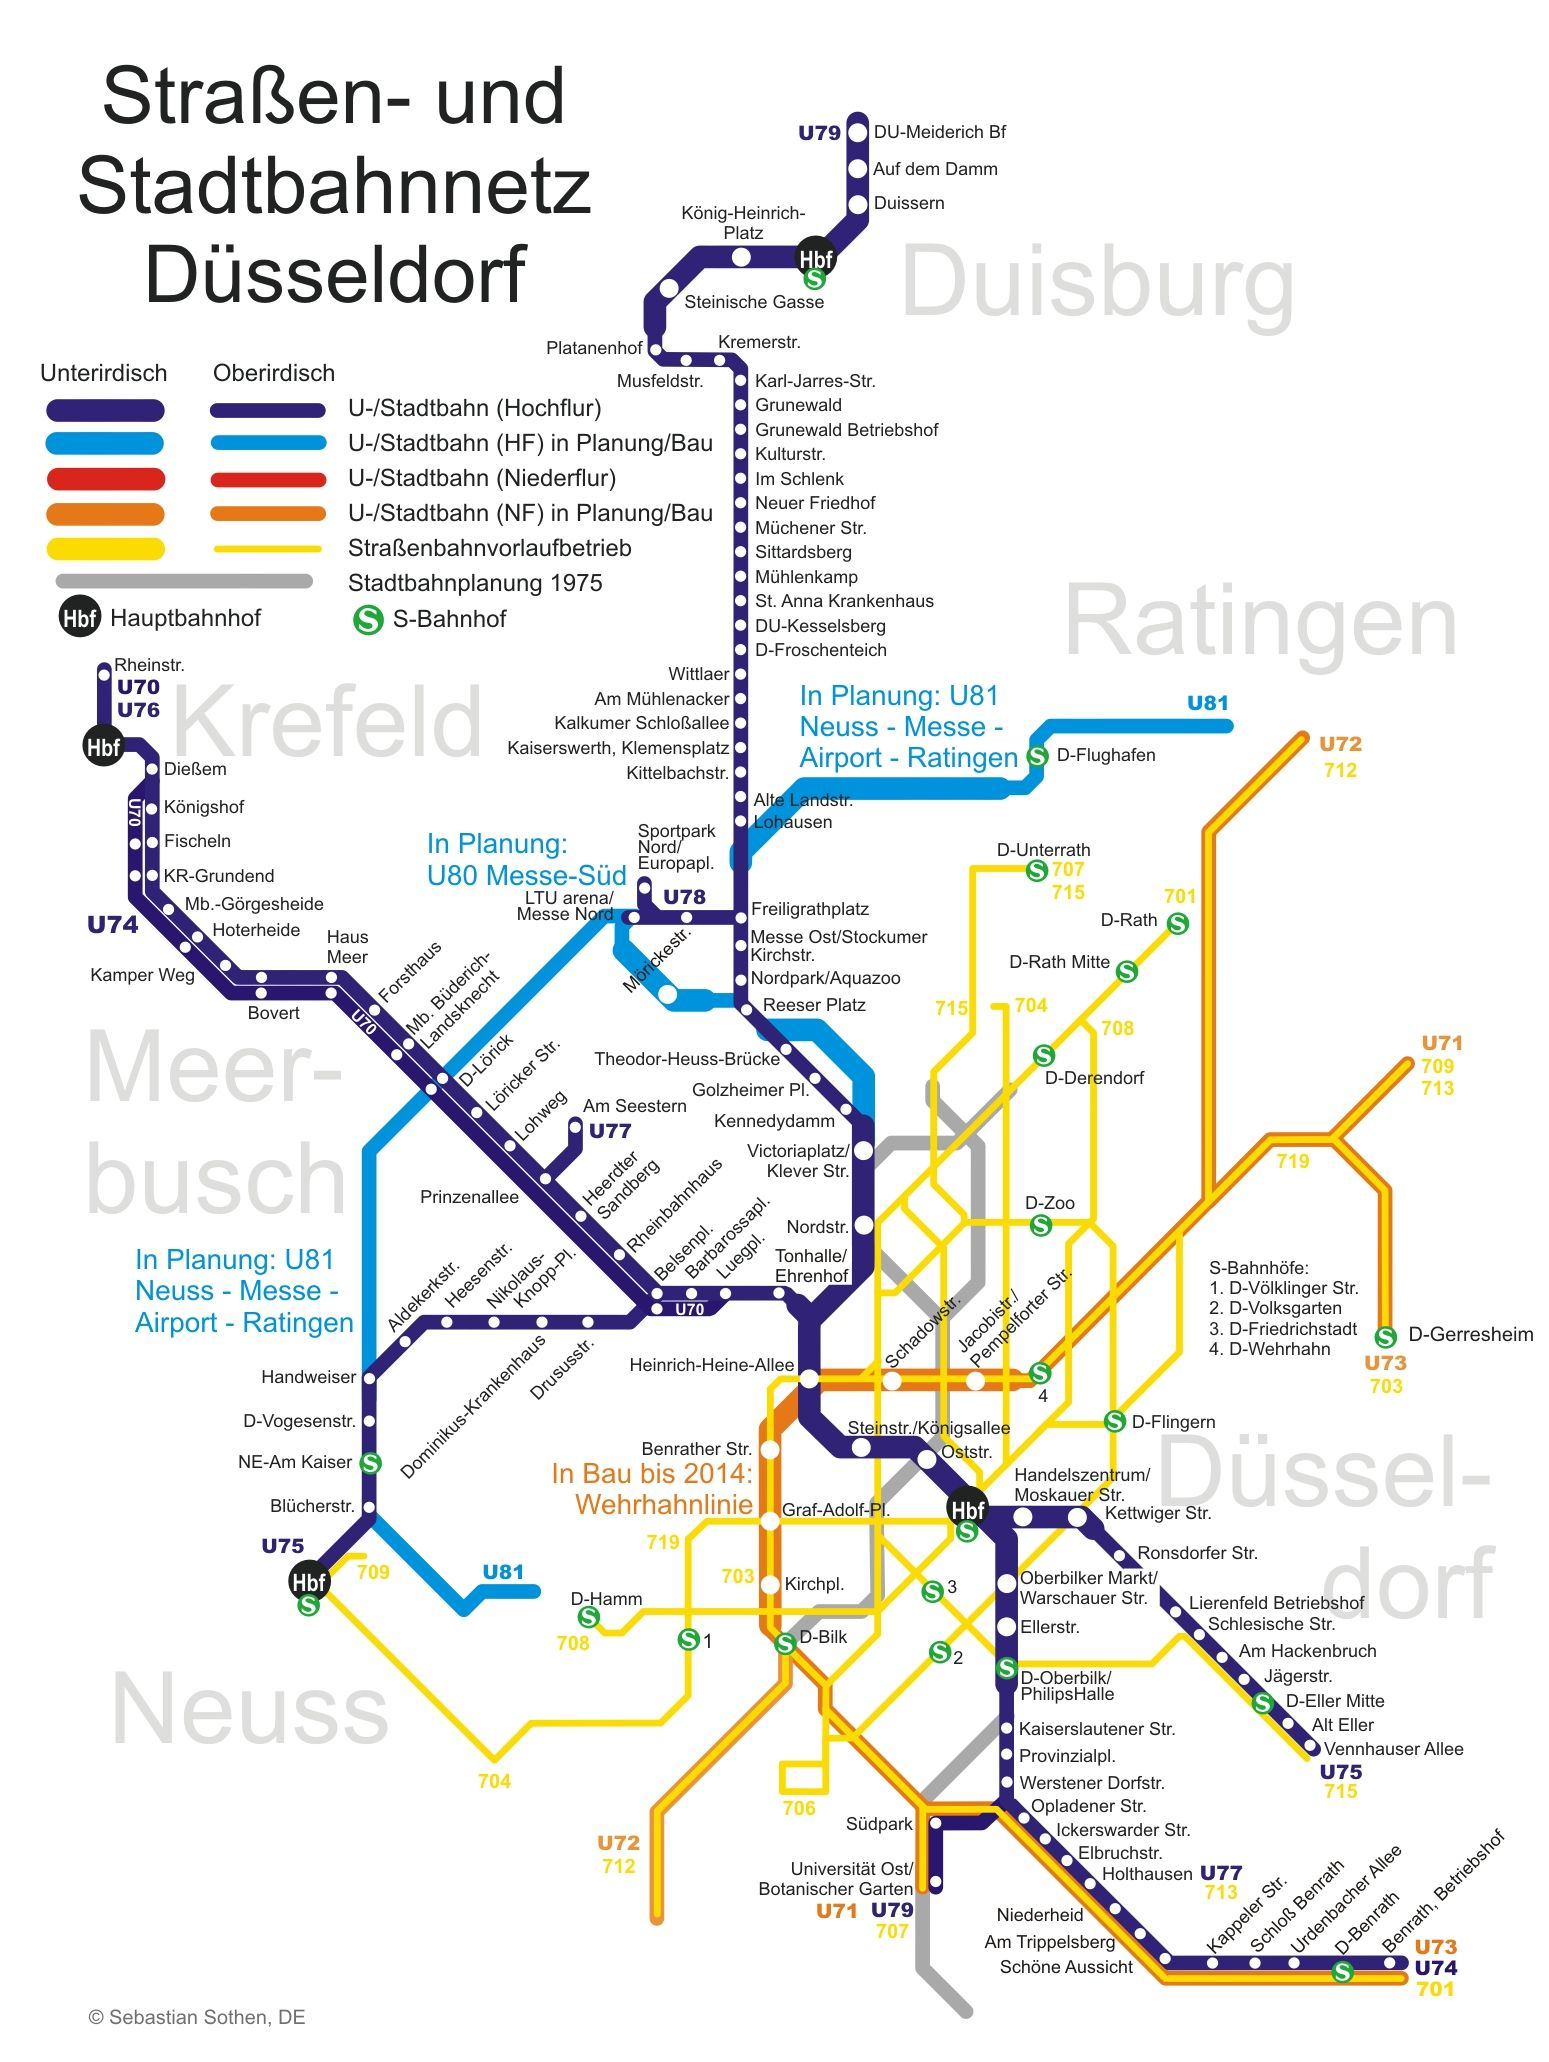 Metro of Duisburgo North rhine westphalia Light rail and Subway map